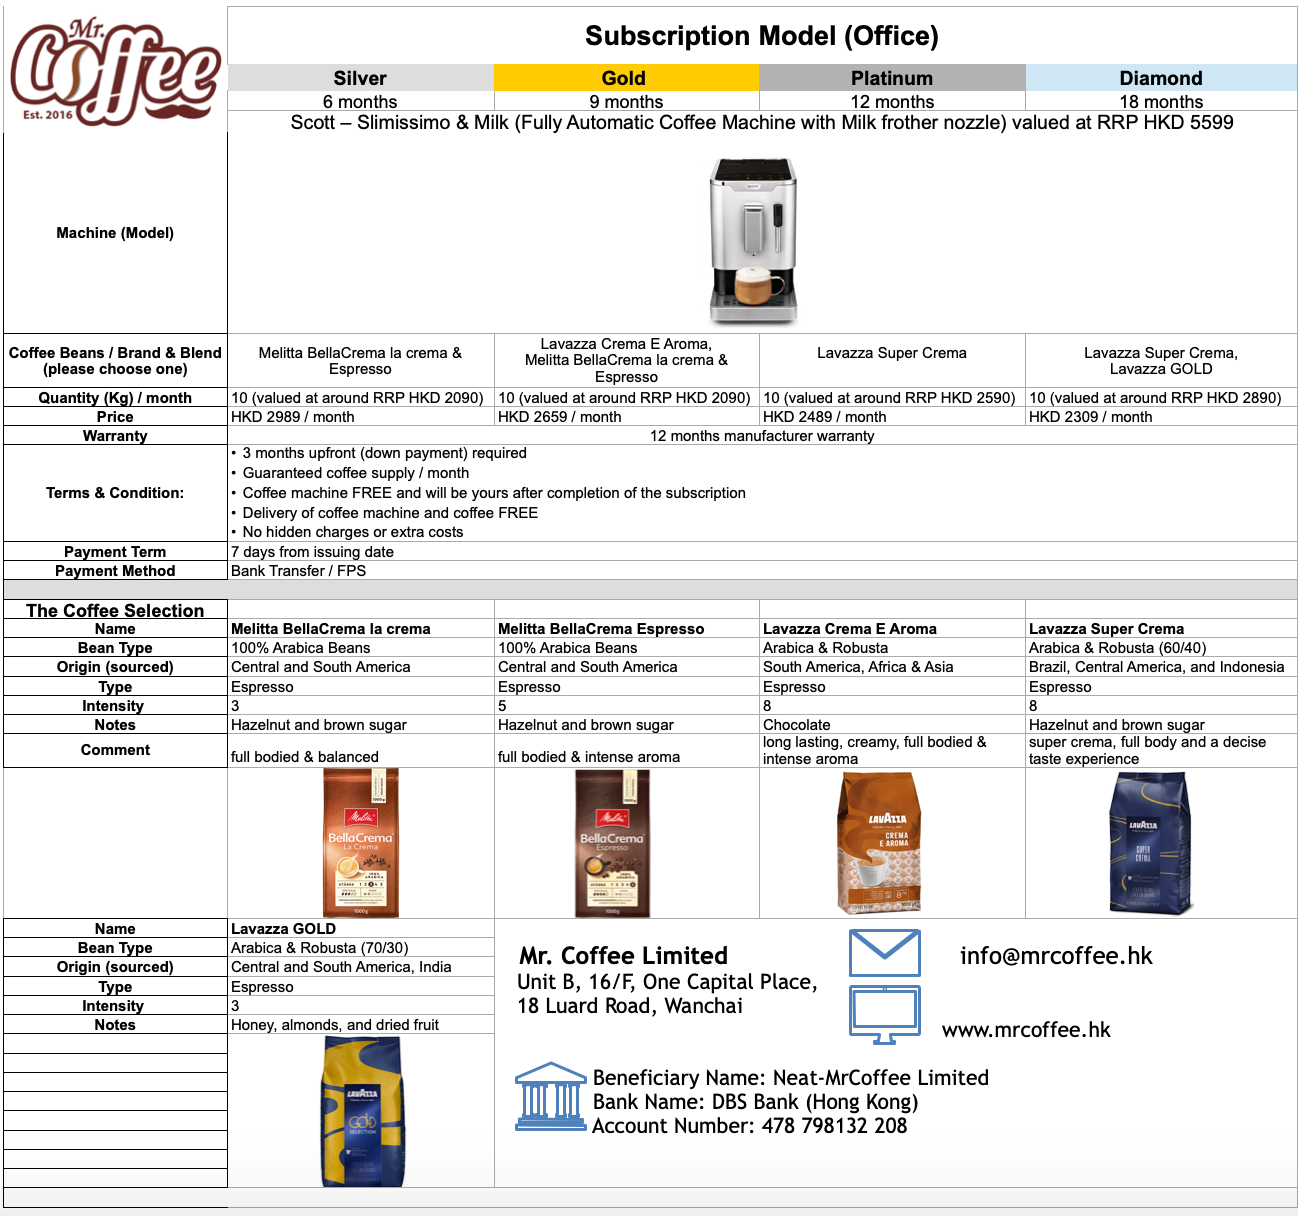 Subscription Model (Office) Mr.Coffee